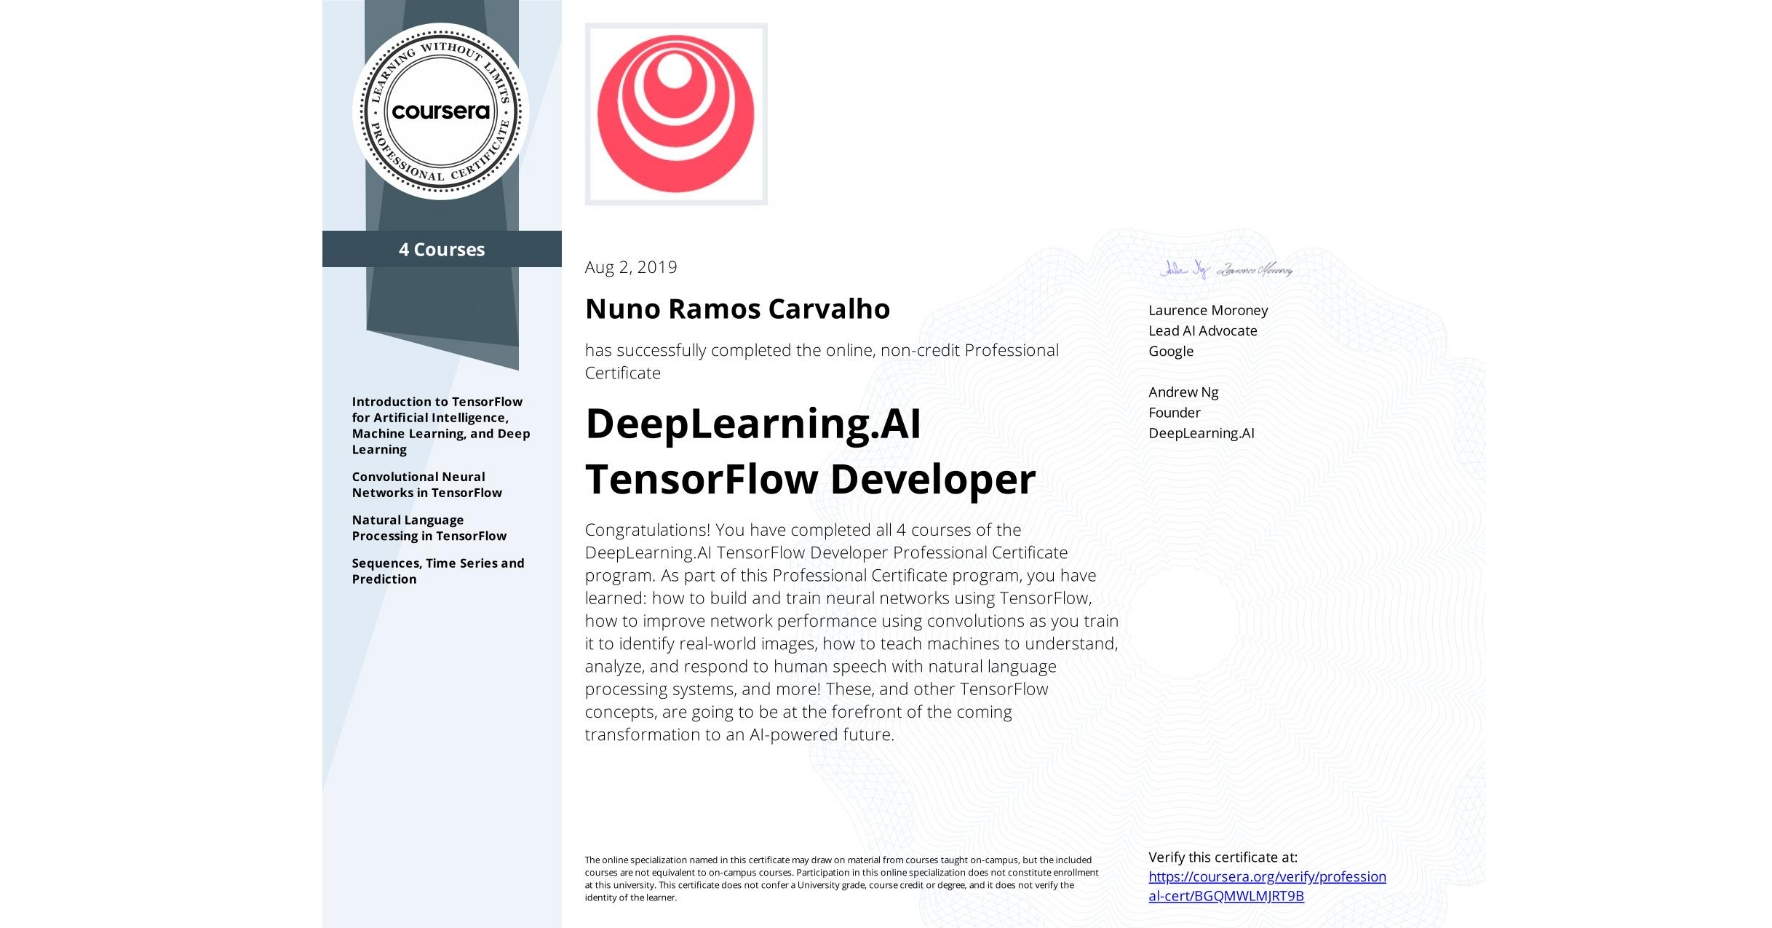 View certificate for Nuno Ramos Carvalho, DeepLearning.AI TensorFlow Developer, offered through Coursera. Congratulations! You have completed all 4 courses of the DeepLearning.AI TensorFlow Developer Professional Certificate program.   As part of this Professional Certificate program, you have learned: how to build and train neural networks using TensorFlow, how to improve network performance using convolutions as you train it to identify real-world images, how to teach machines to understand, analyze, and respond to human speech with natural language processing systems, and more!  These, and other TensorFlow concepts, are going to be at the forefront of the coming transformation to an AI-powered future.